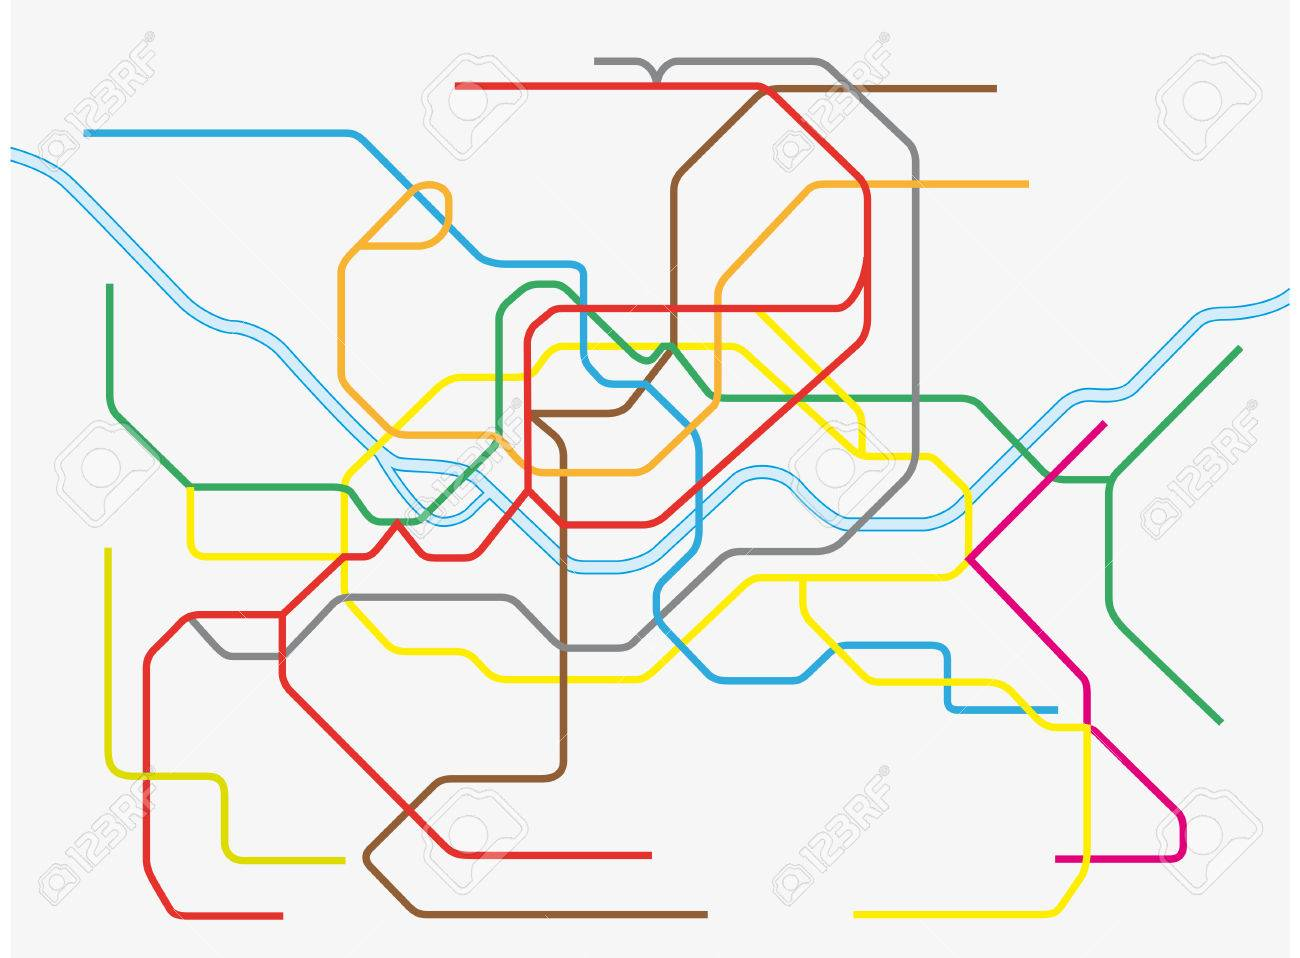 Eoul Subway Map.Colorful Seoul Metropolitan Subway Map